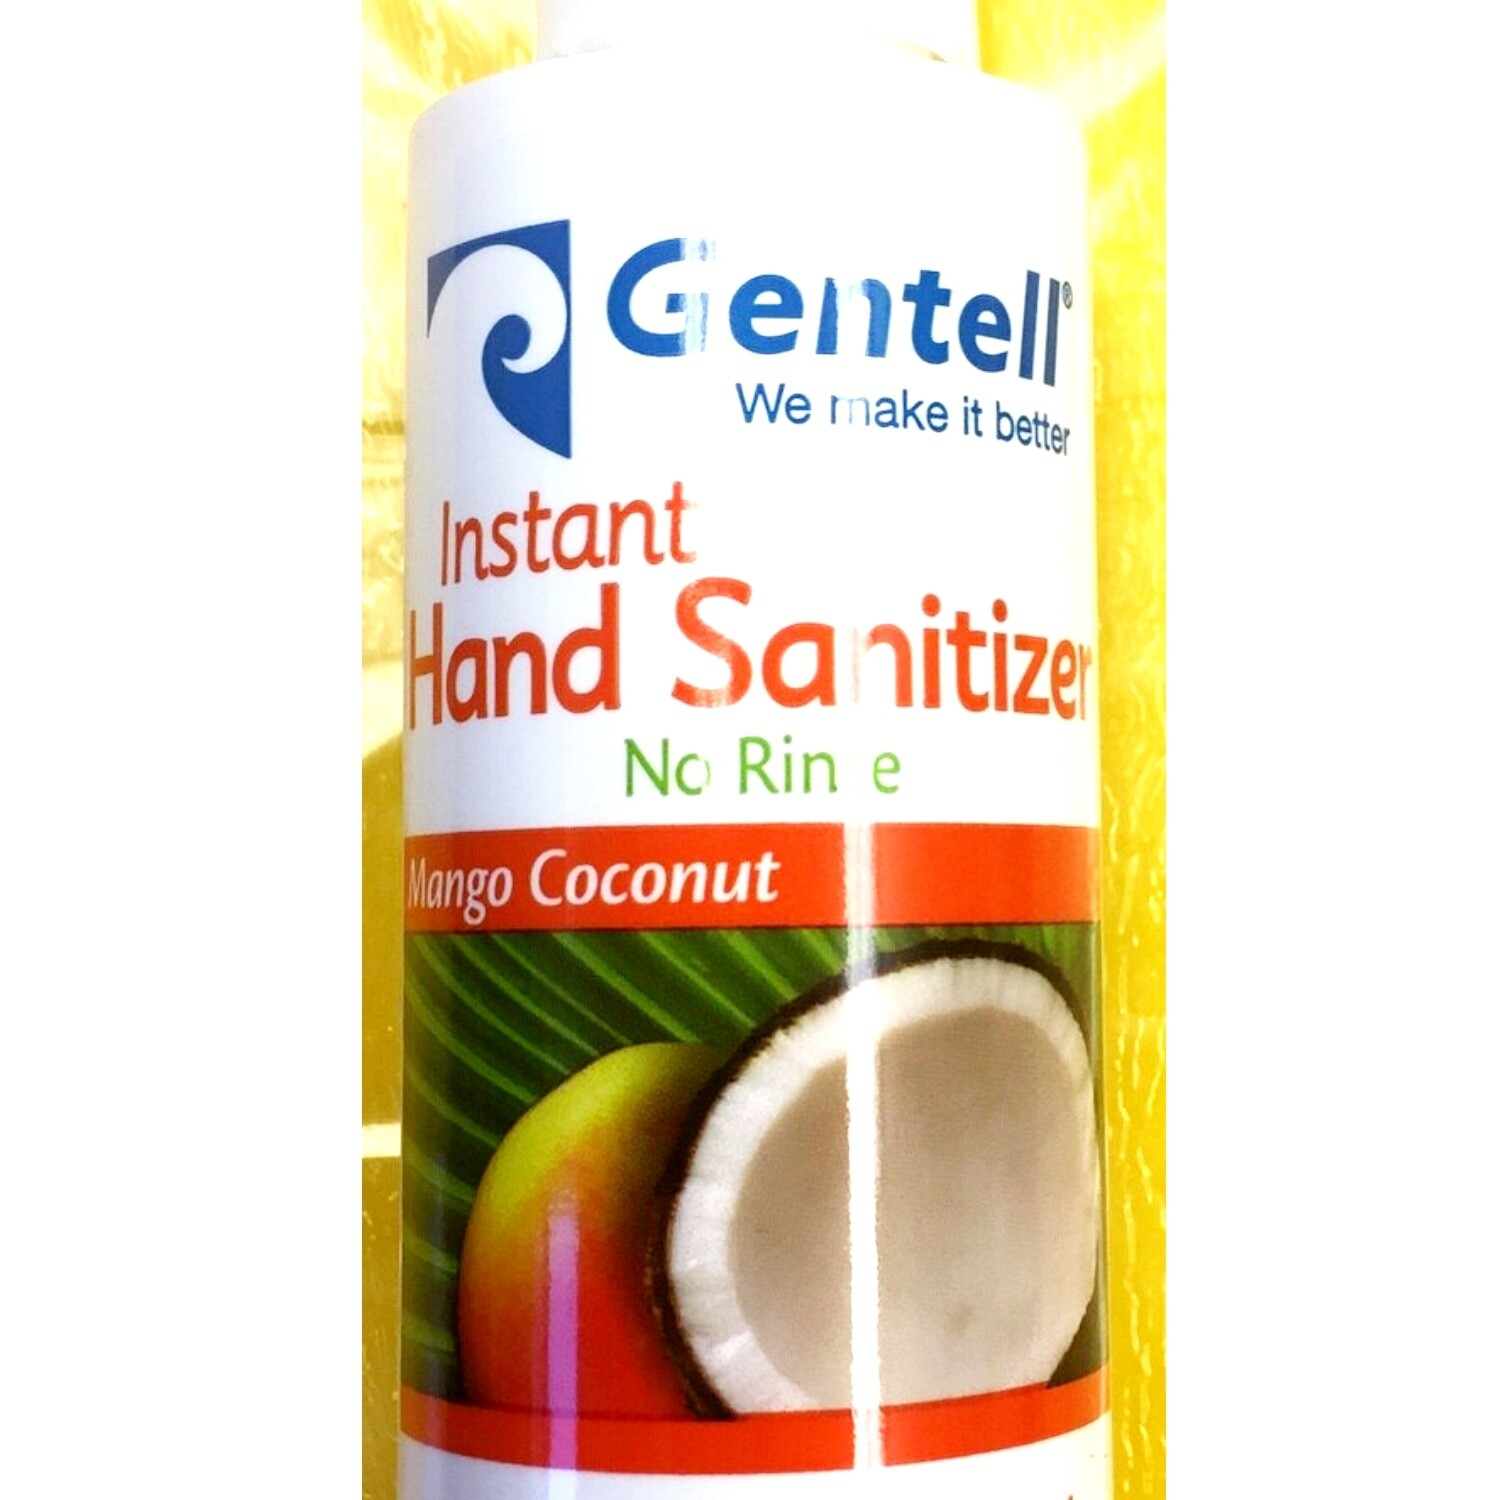 Hand Sanitizer - Gentell Instant Hand Sanitizer 4 ounce squeeze bottle Mango/Coconut